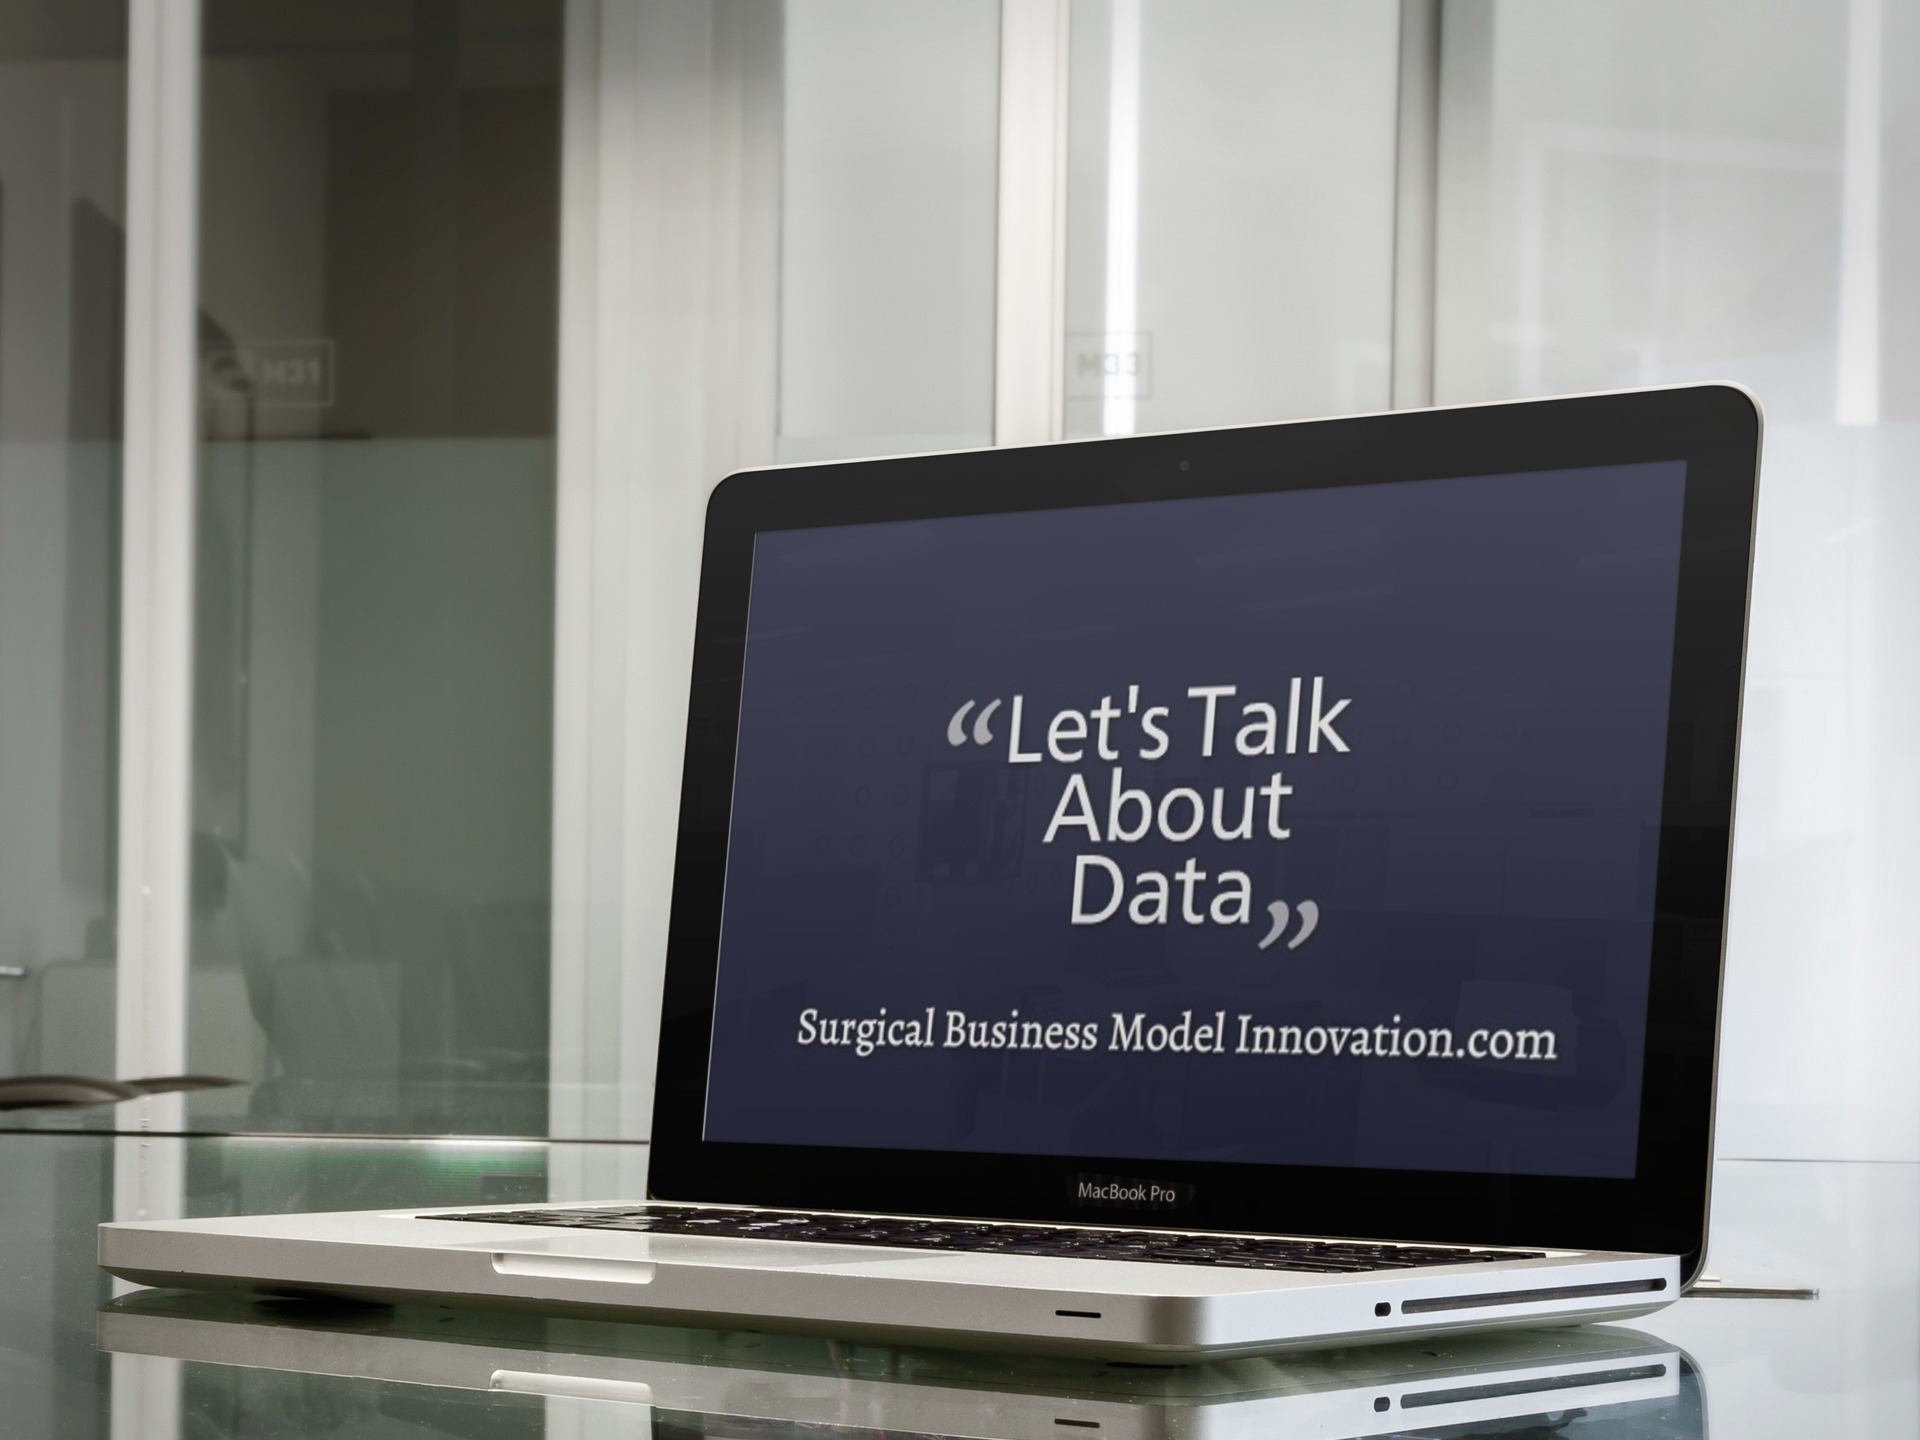 Let's Talk About Data